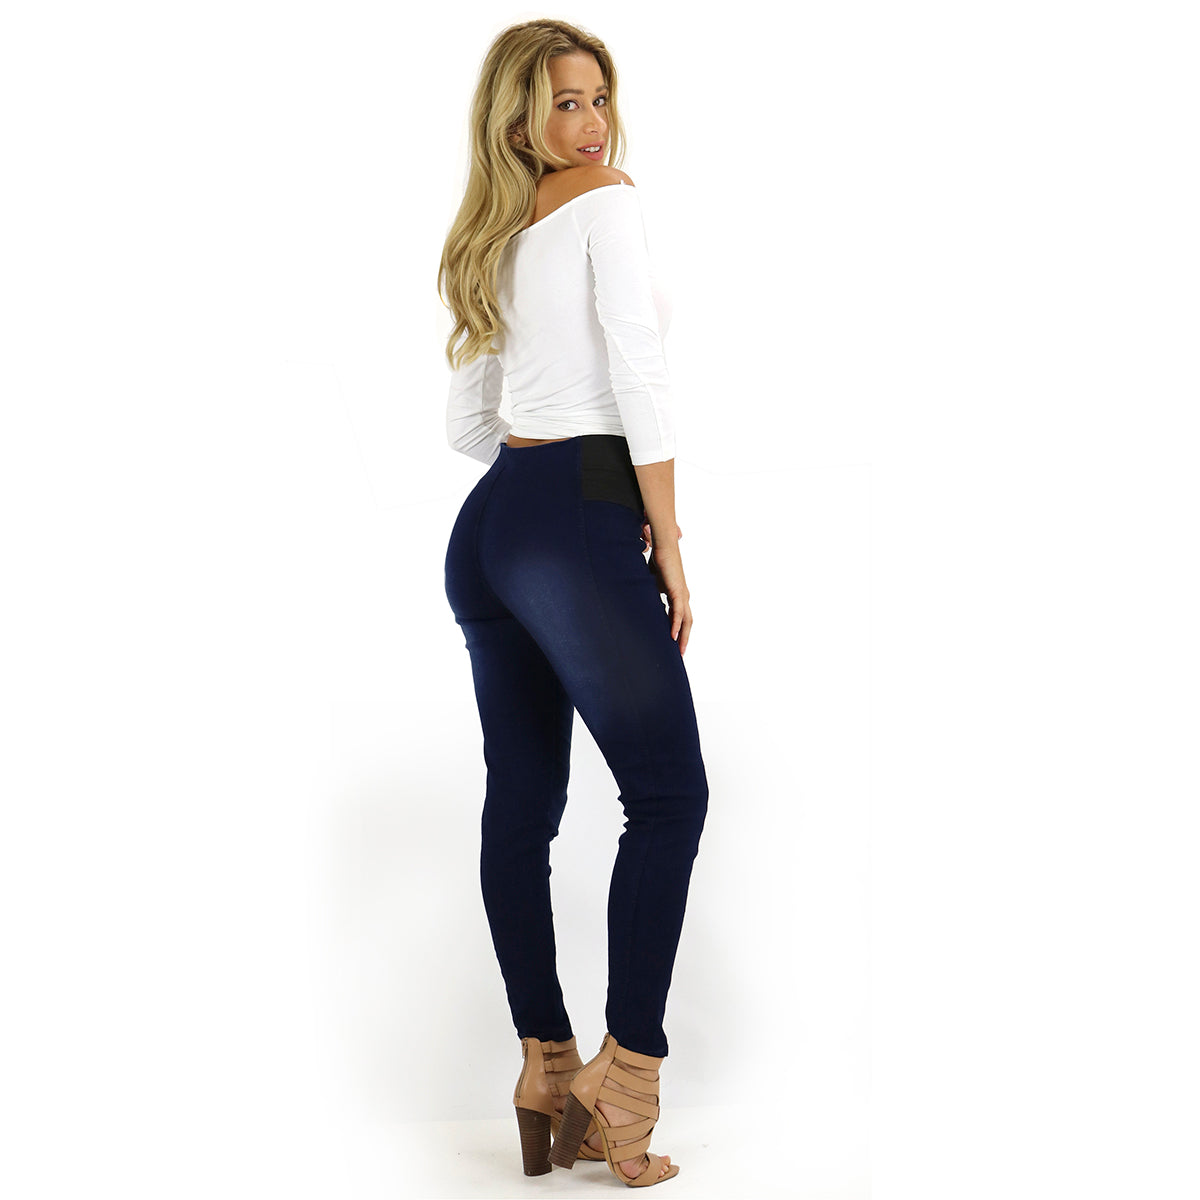 Essential Waist Control Black Denim Stretch Pants